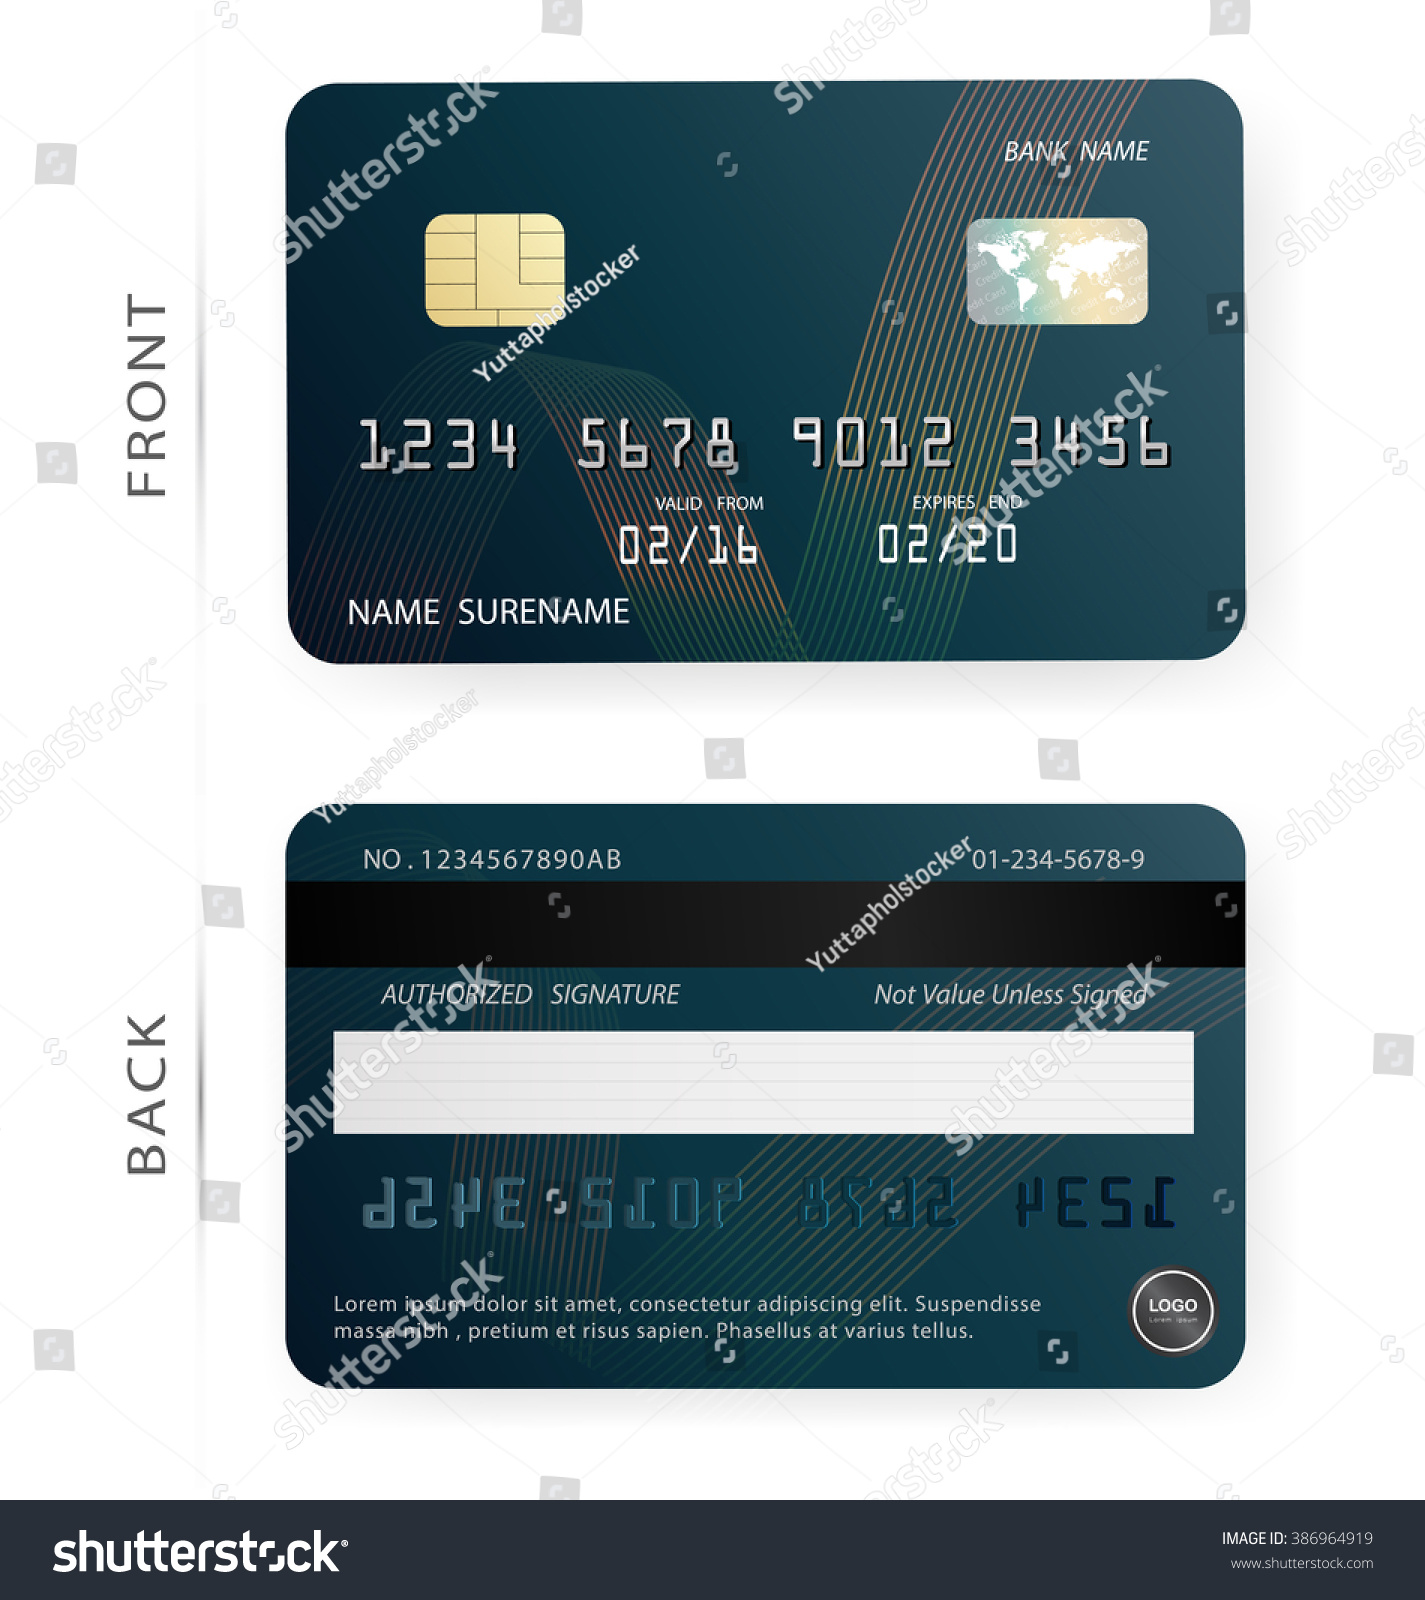 Awesome Collection Of Business Debit Card – Business Cards and Resume